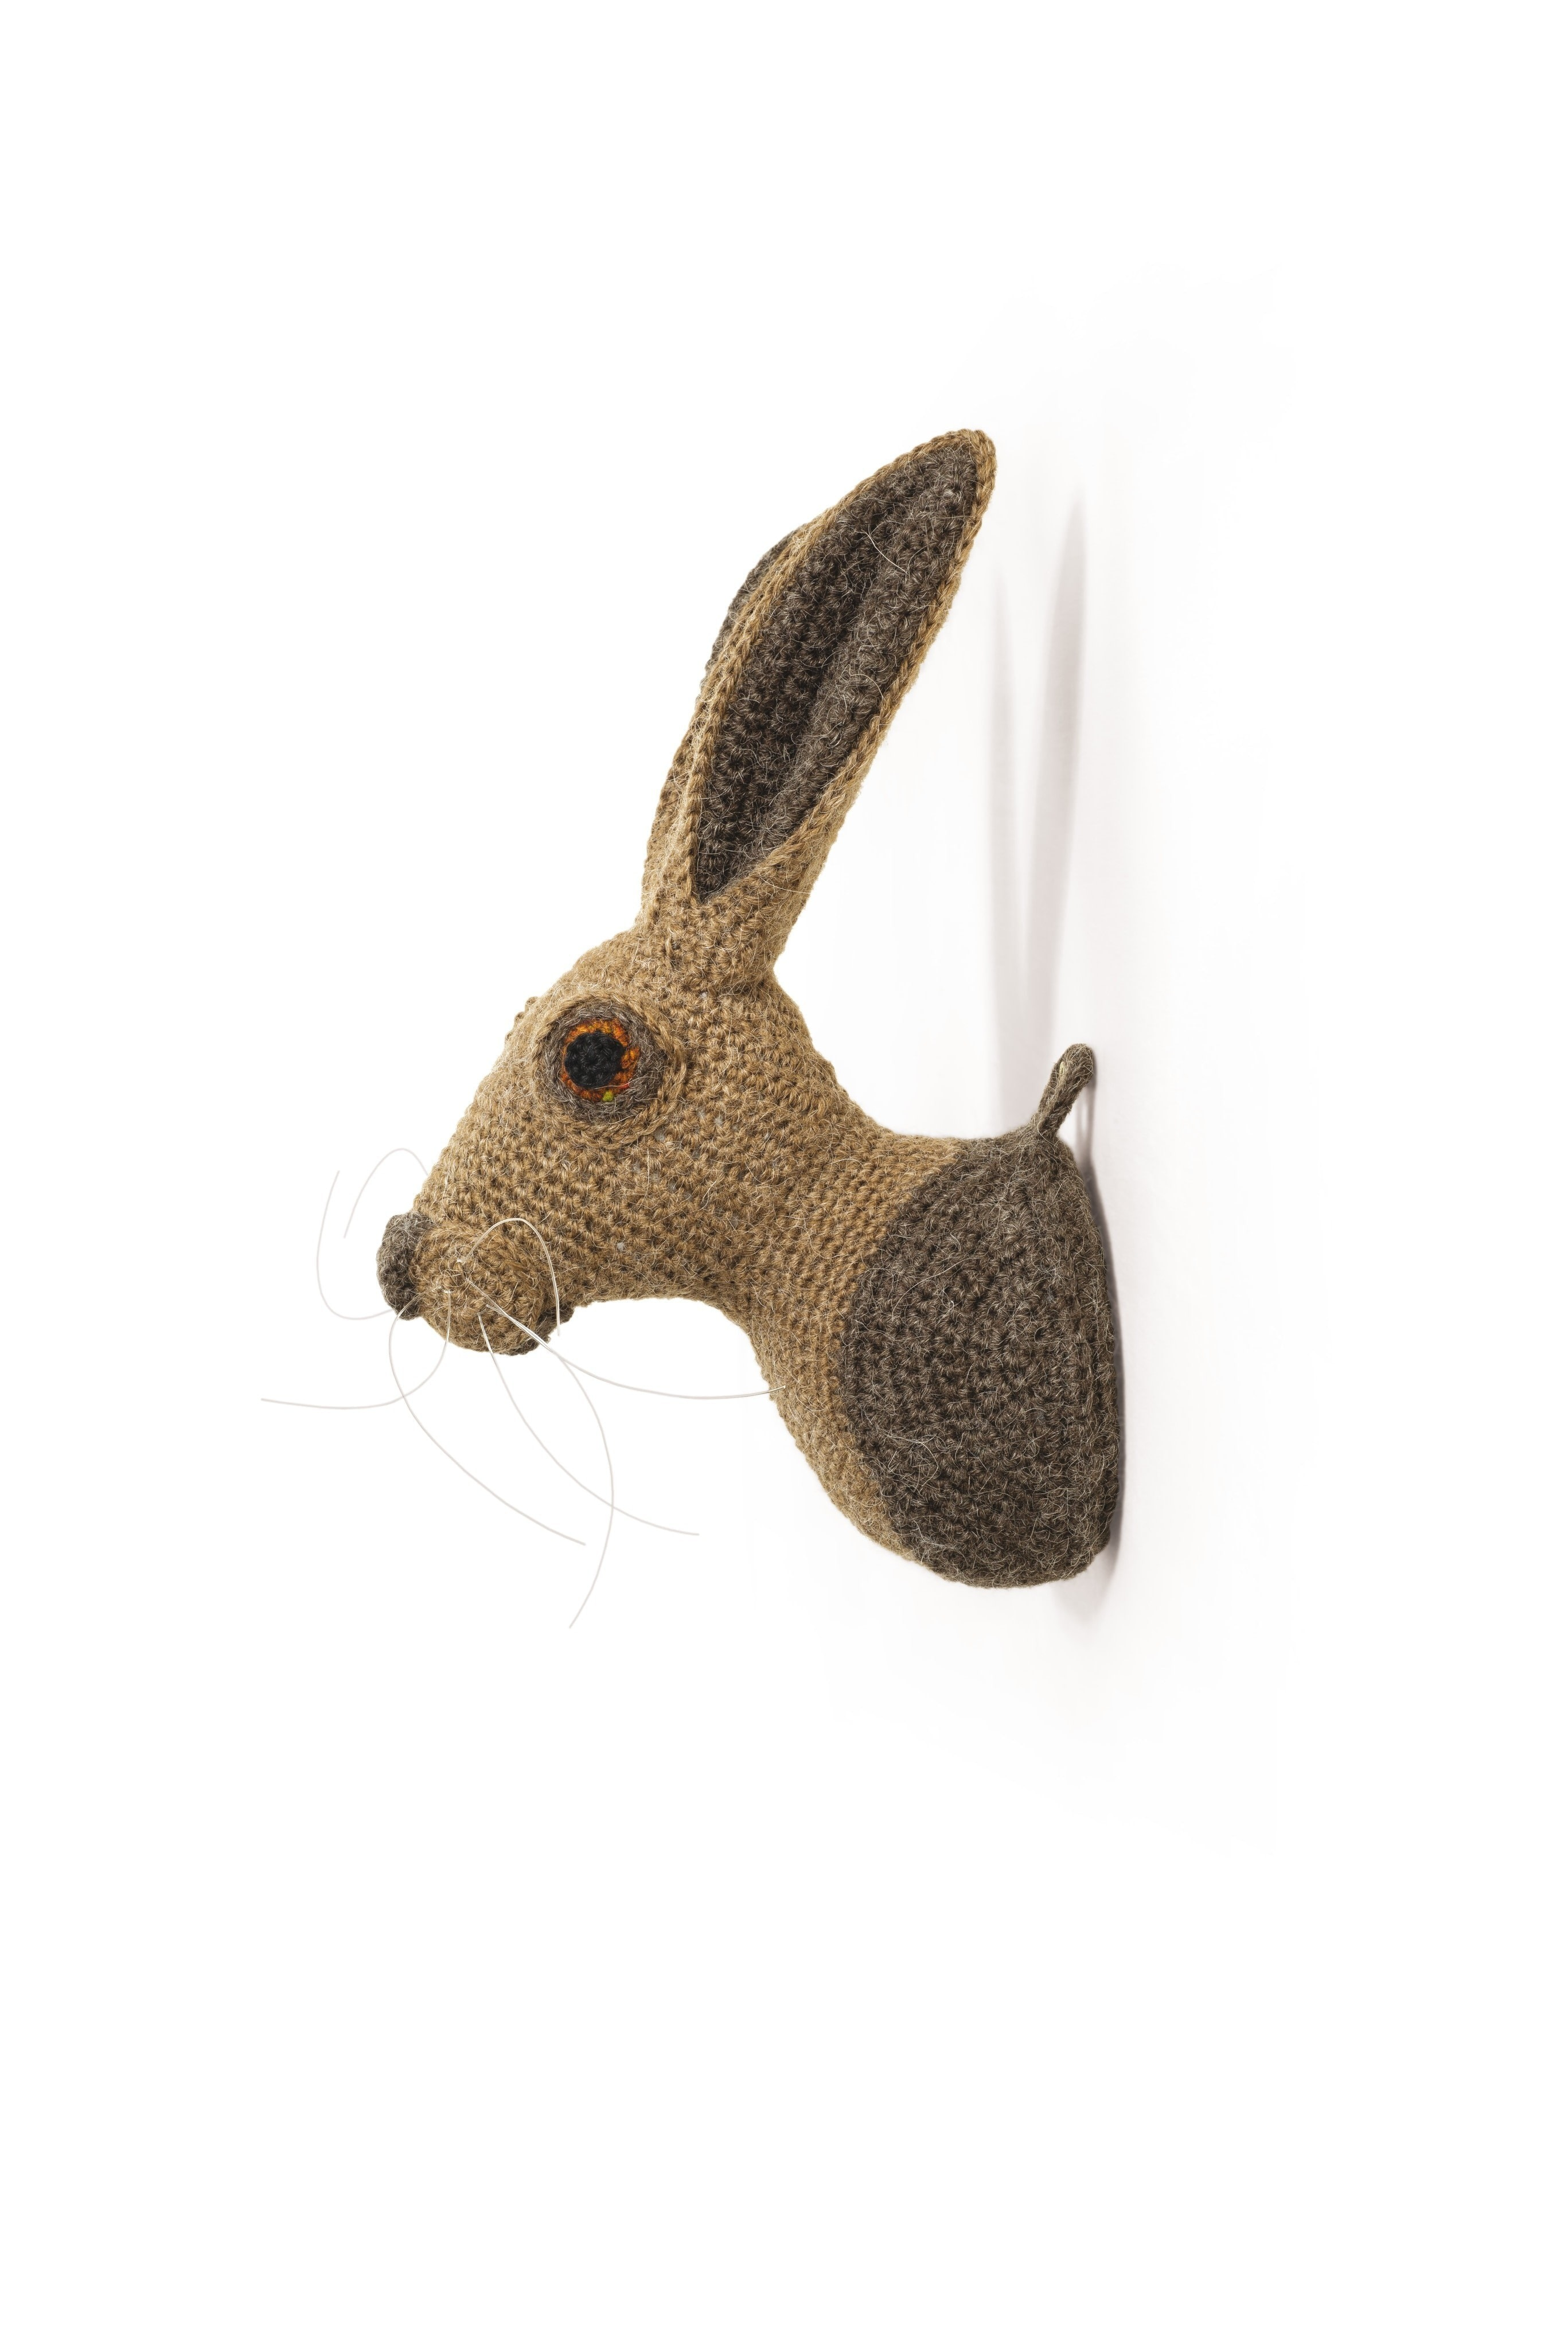 Hare Animal Head 183 Extract From Animal Heads By Vanessa